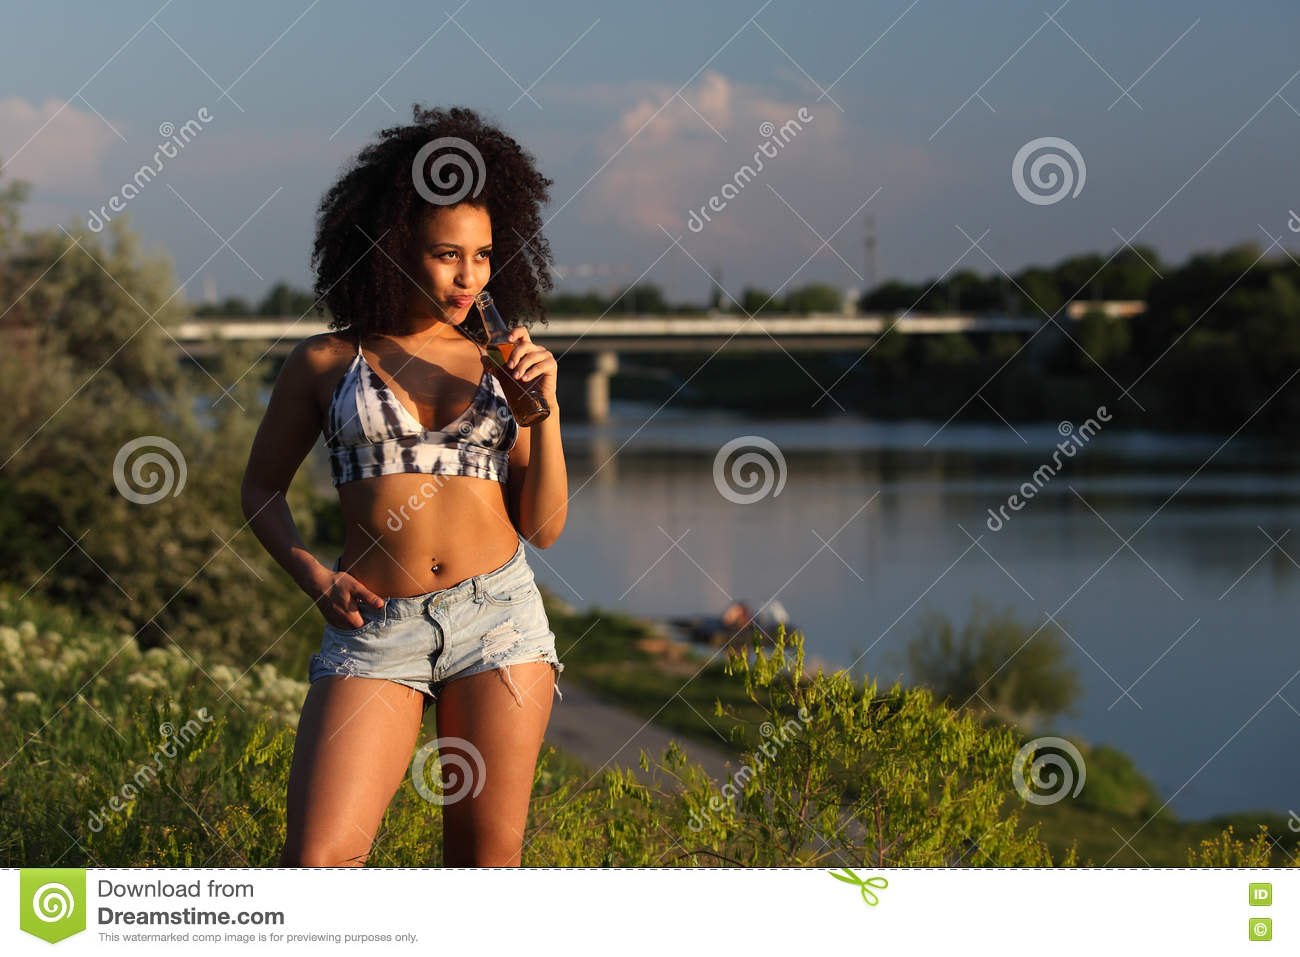 674c30248a70 Beautiful African Girl With Curly Hair Standing At A River Stock ...